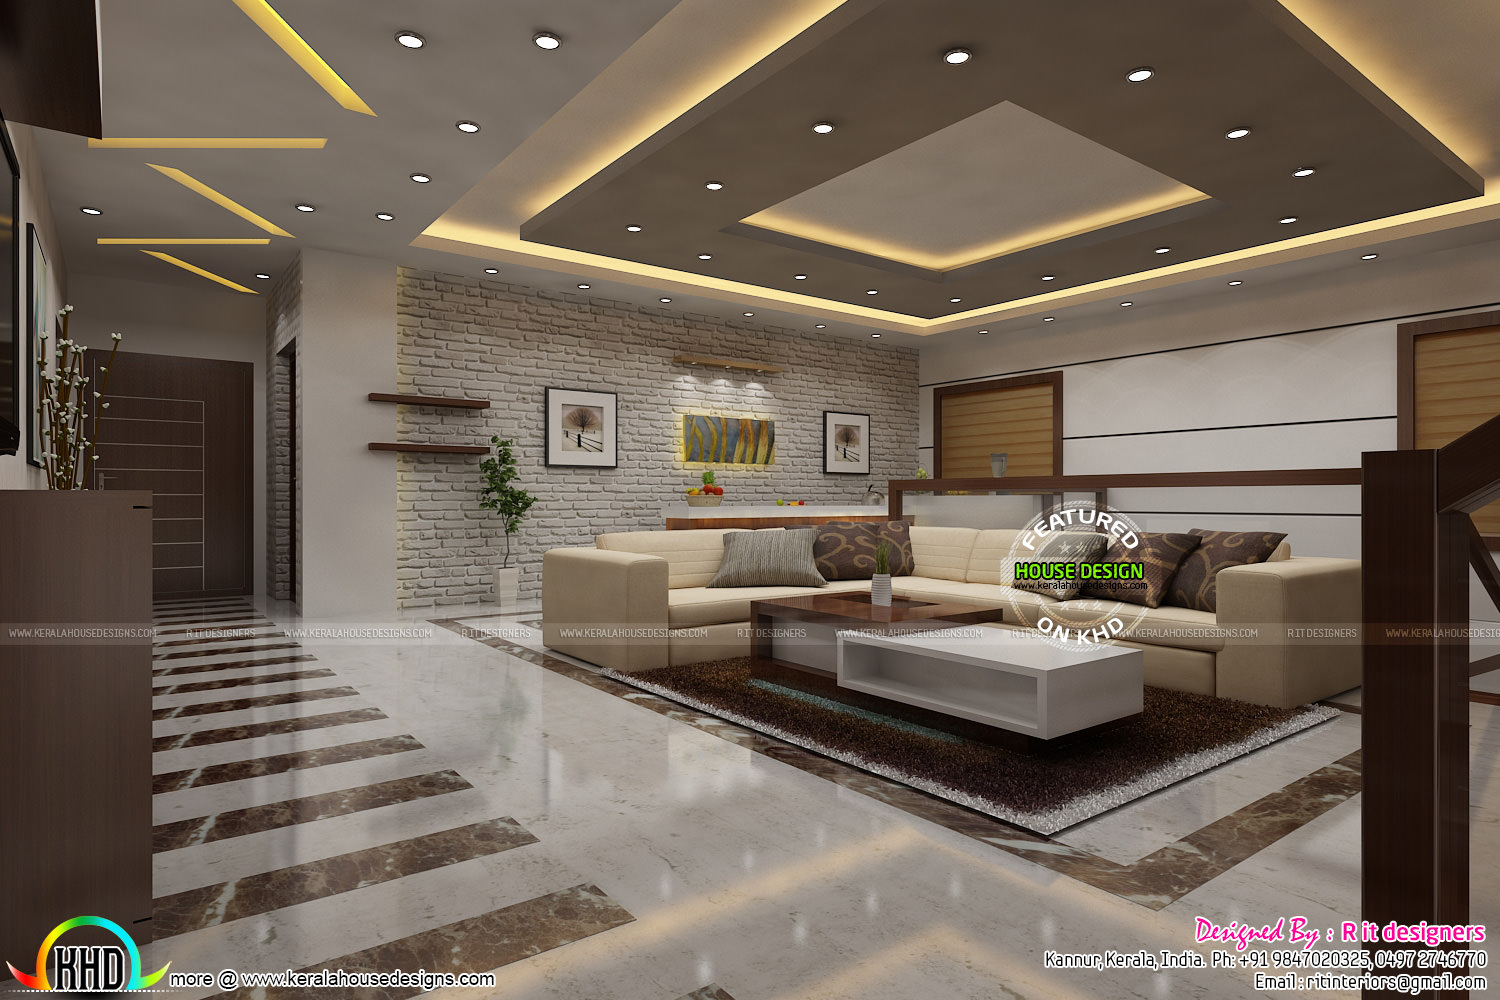 Most modern kerala living room interior kerala home design and floor plans - Room house design ...